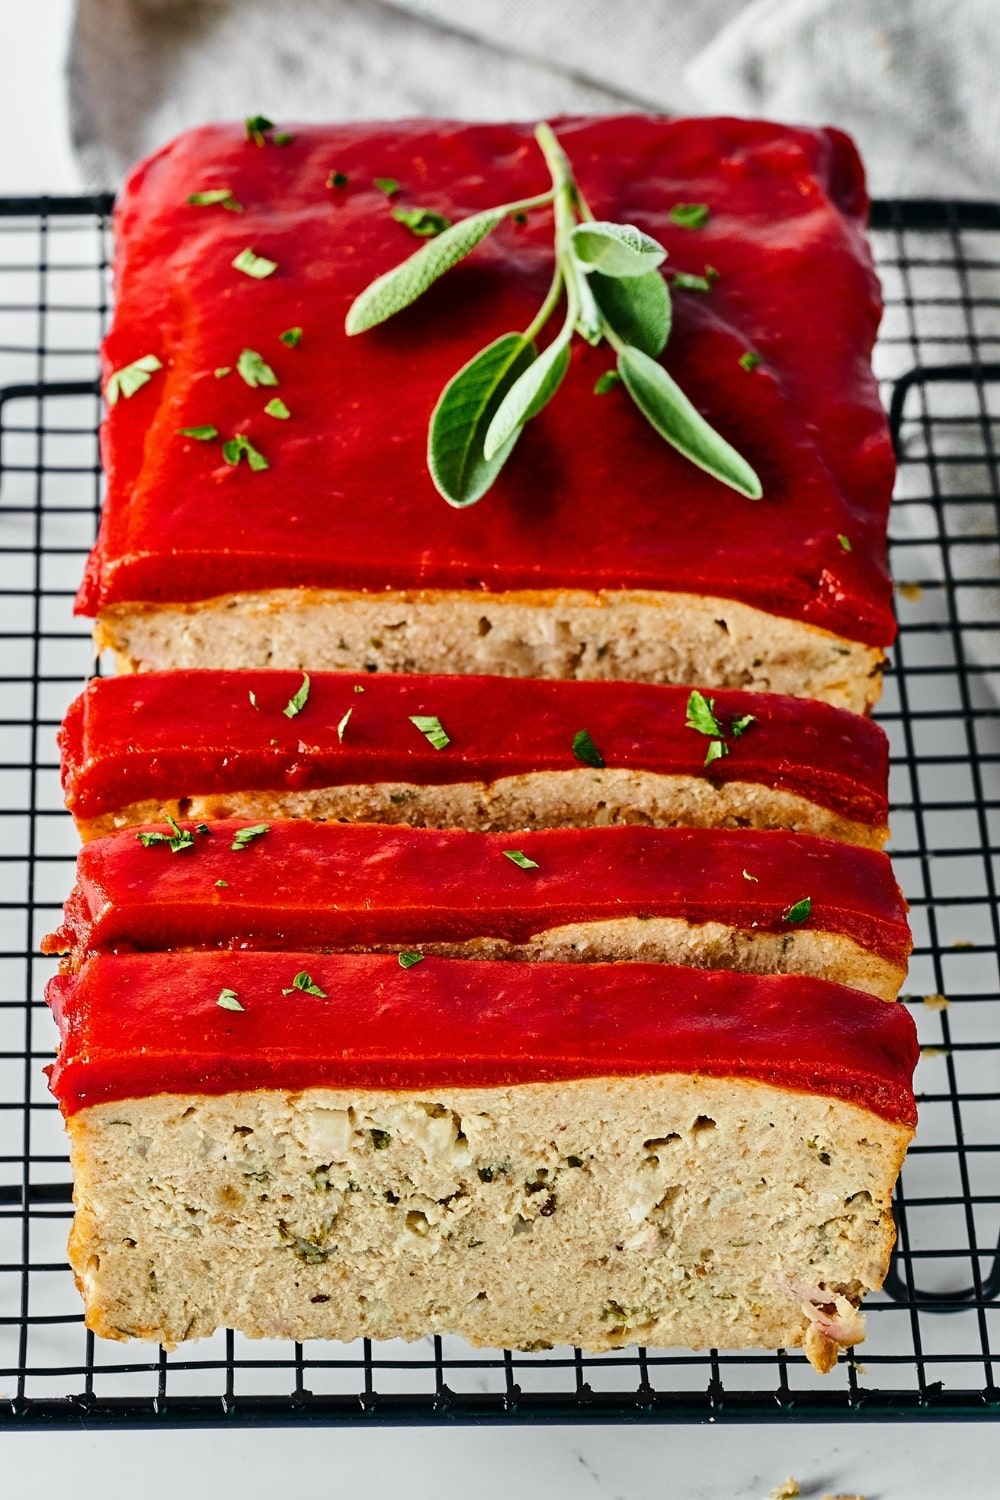 Chicken meatloaf on a black wire rack. There are three slices of meatloaf cut leaning against the rest of the meatloaf.